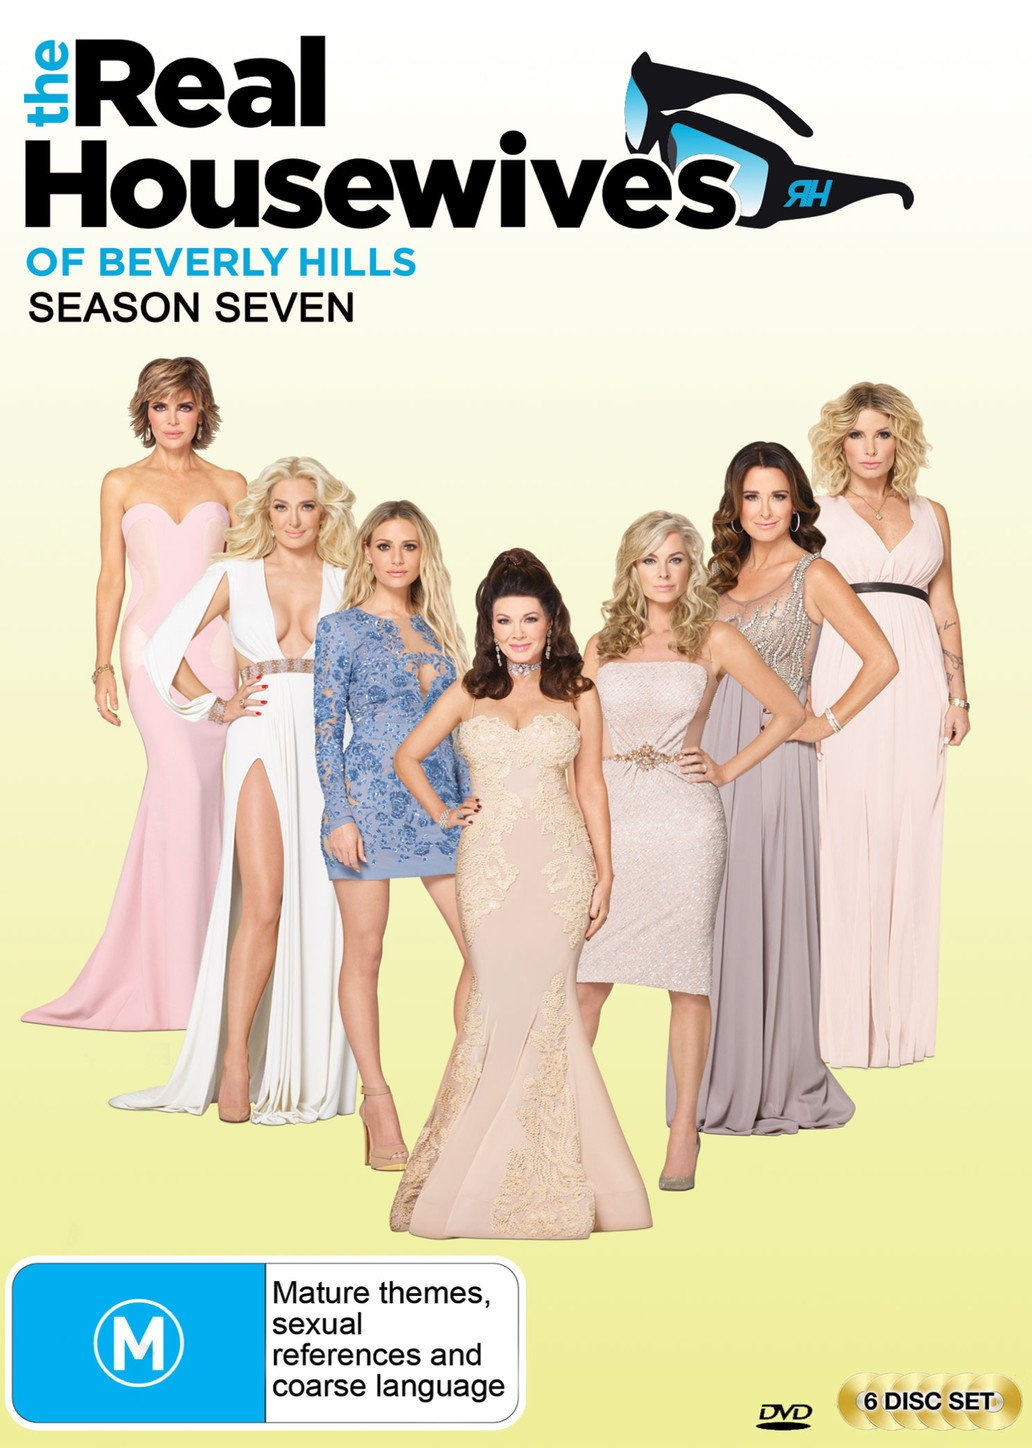 Real Housewives of Beverly Hills - Season 7